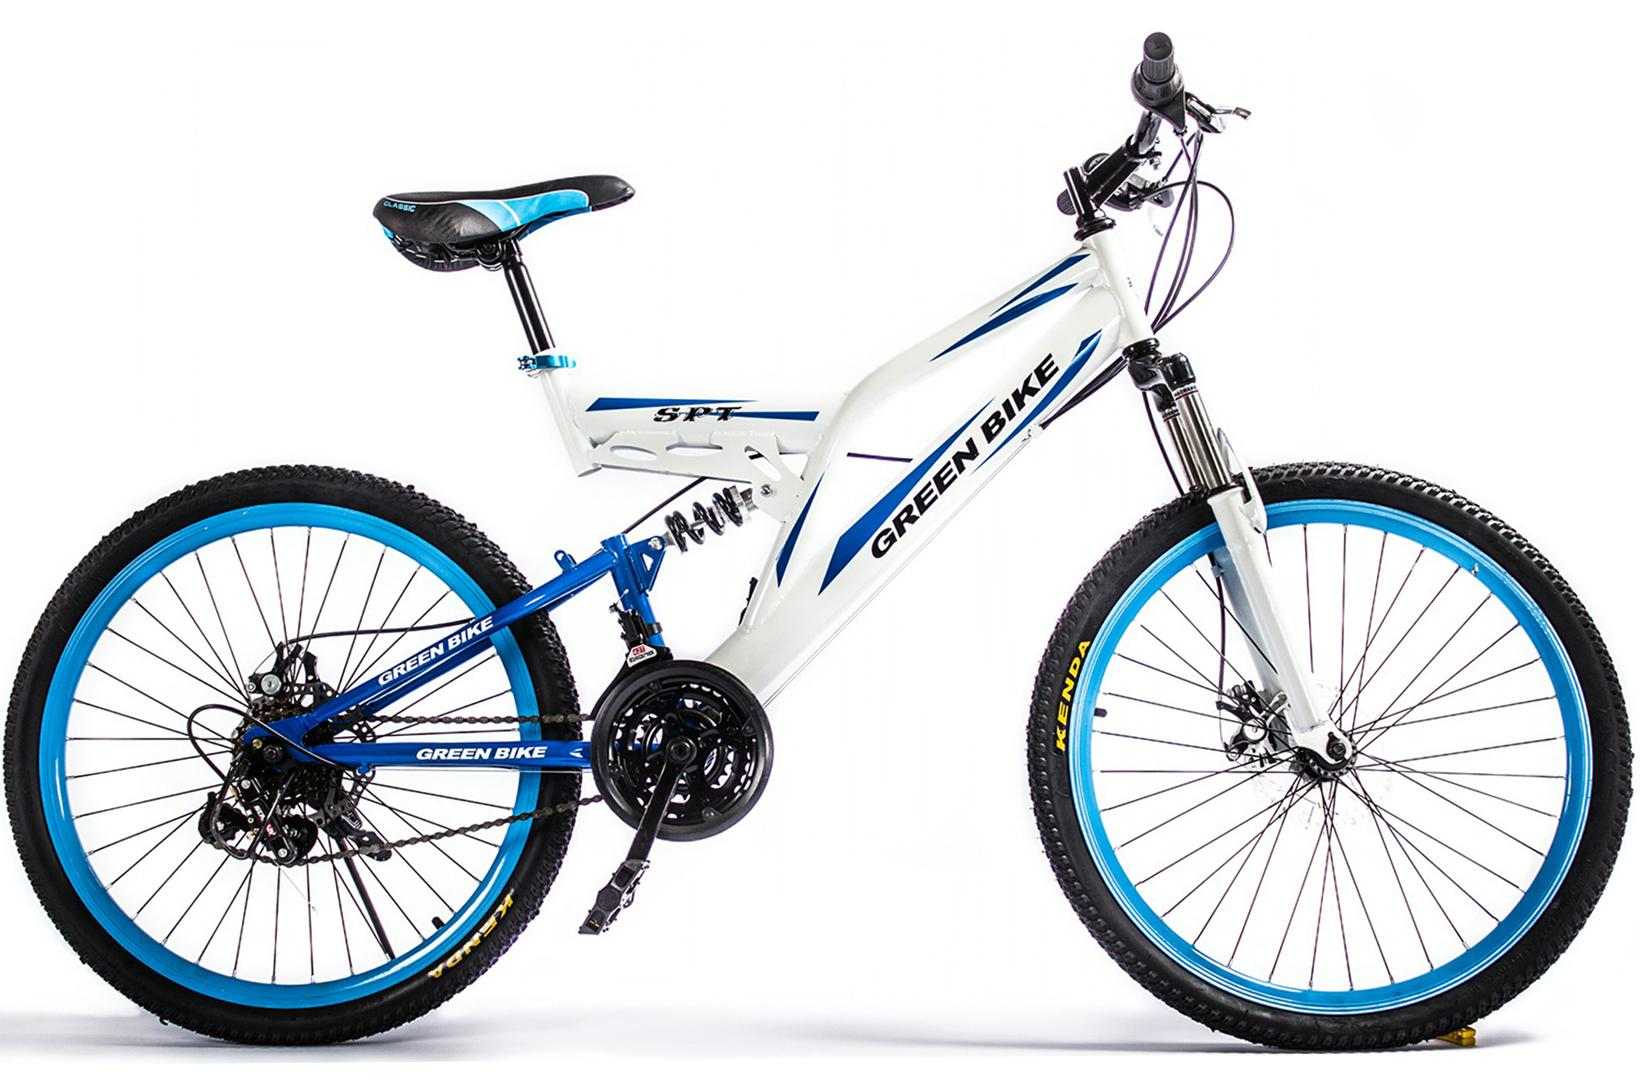 ВЕЛОСИПЕД GREEN BIKE SPT D 26'